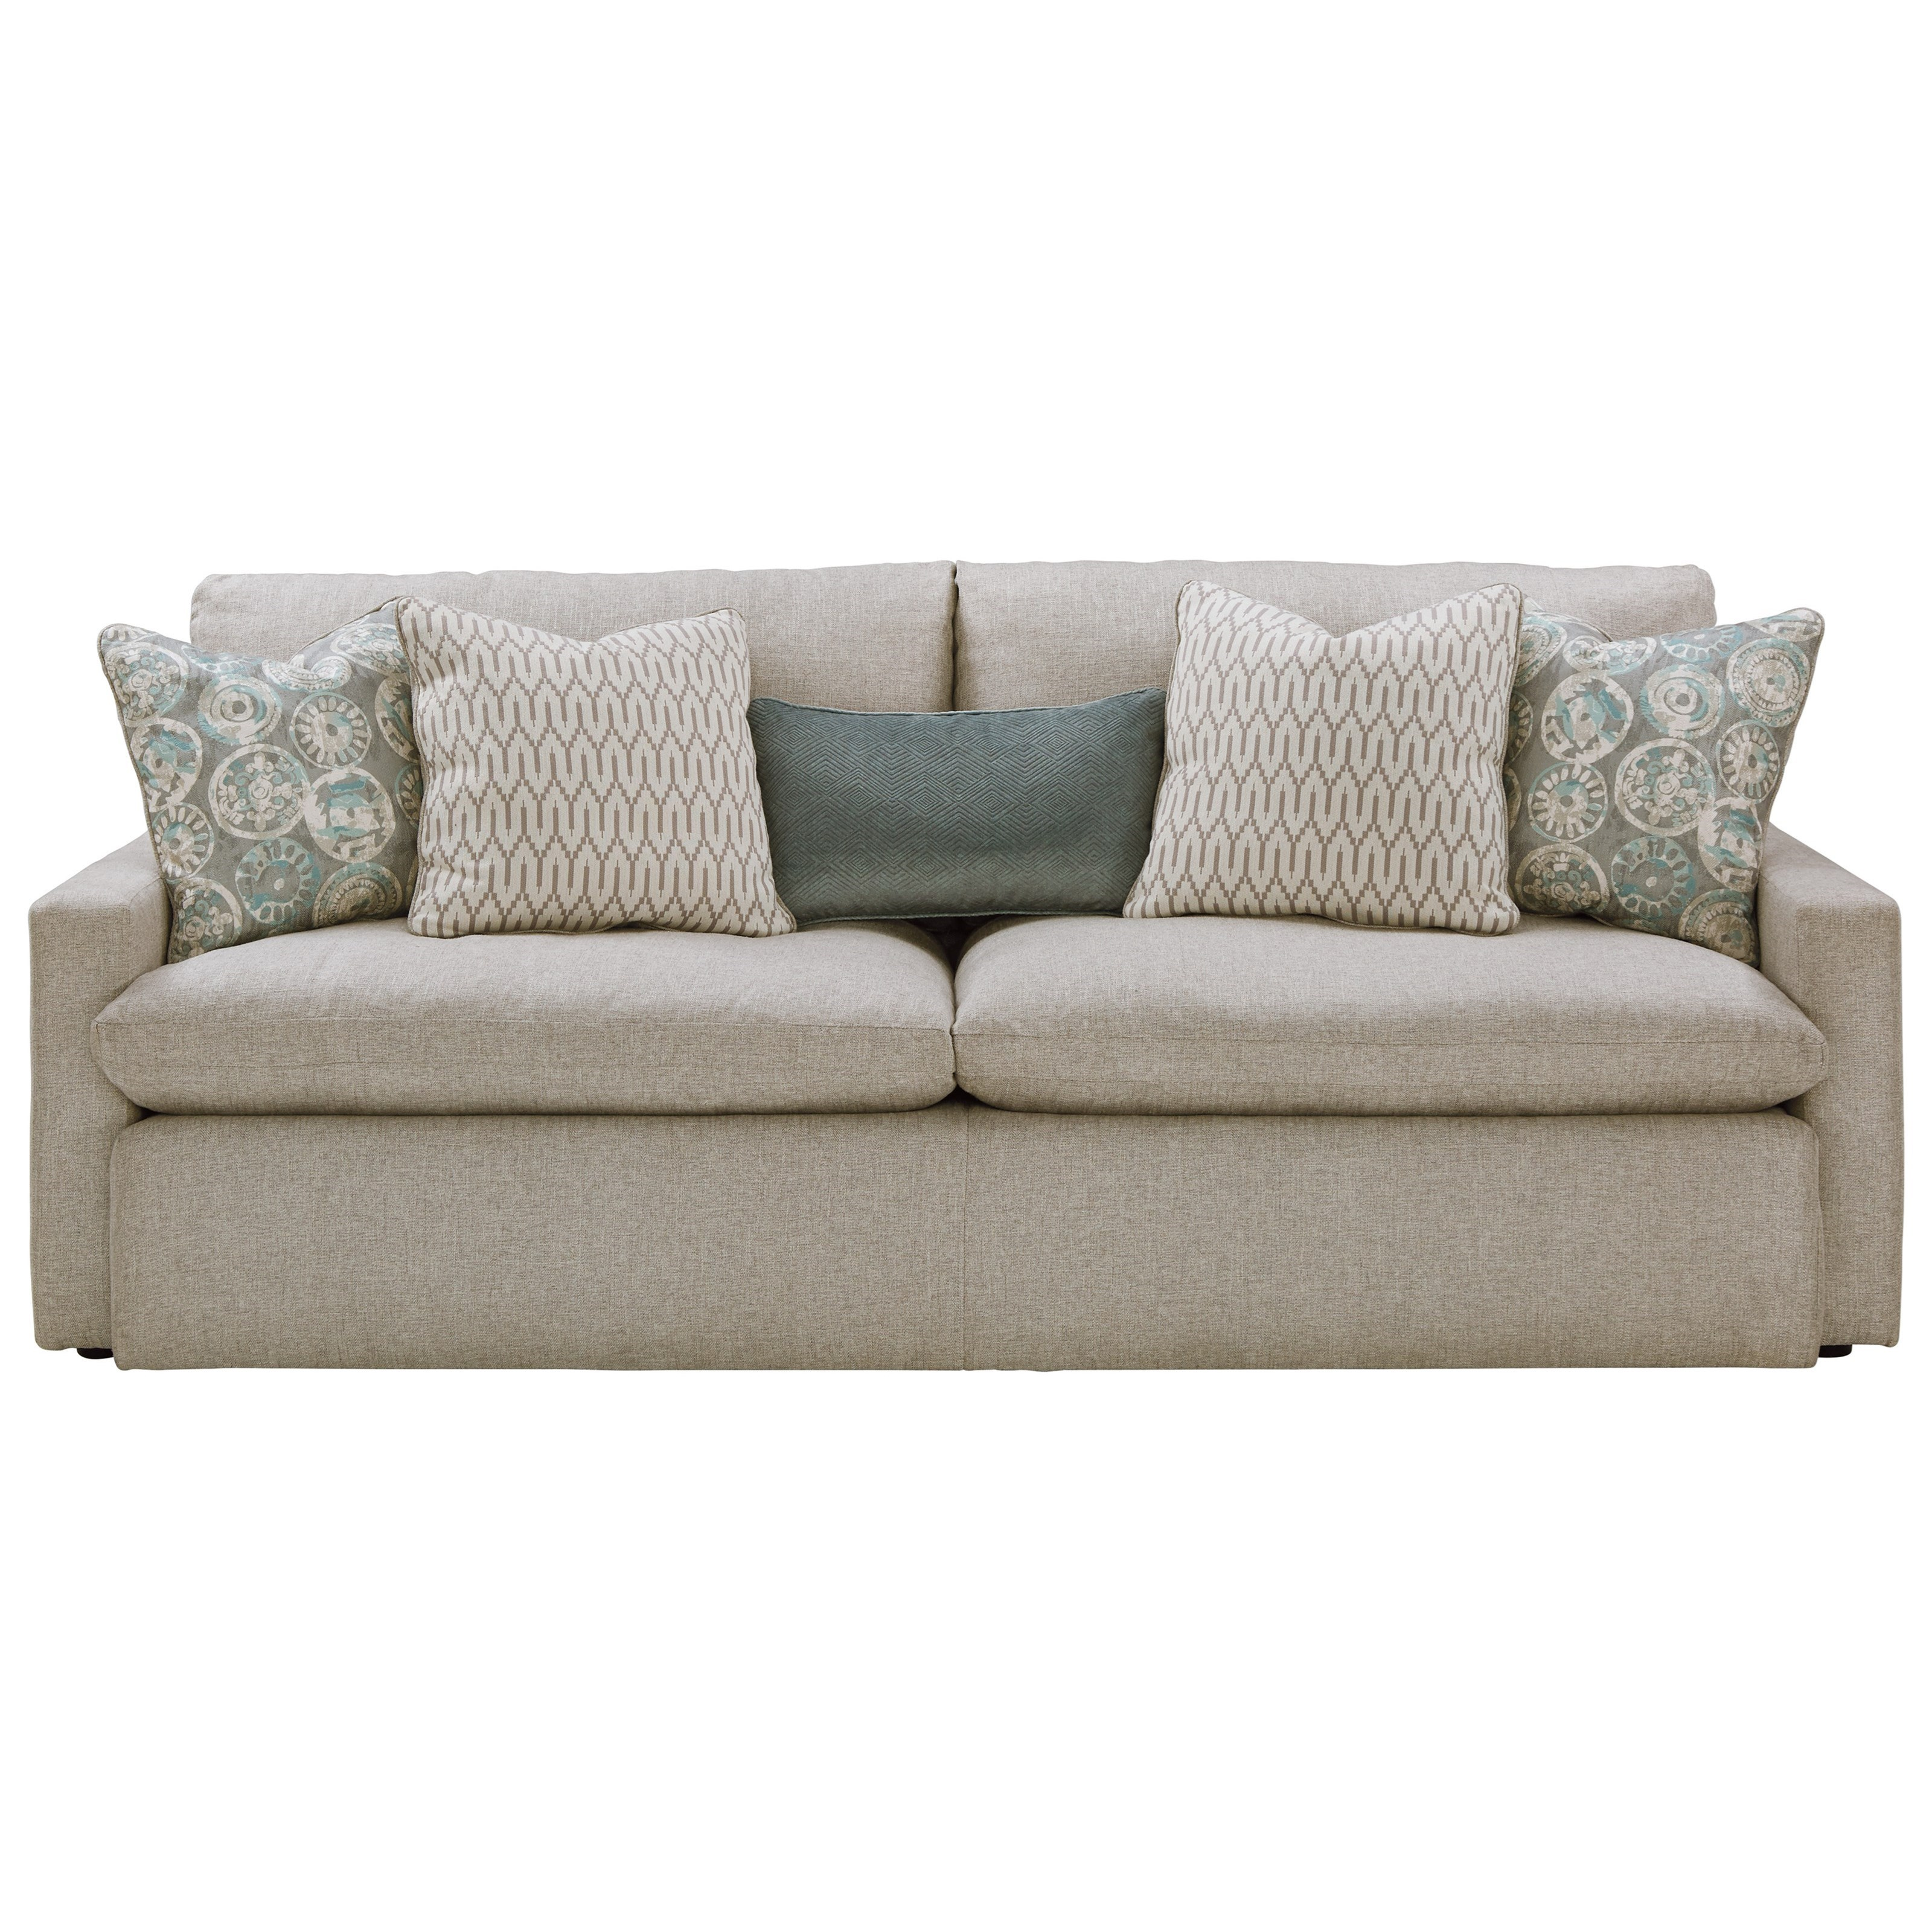 Benchcraft Melilla 2830238 Sofa with Feather Blend Cushions | John V ...